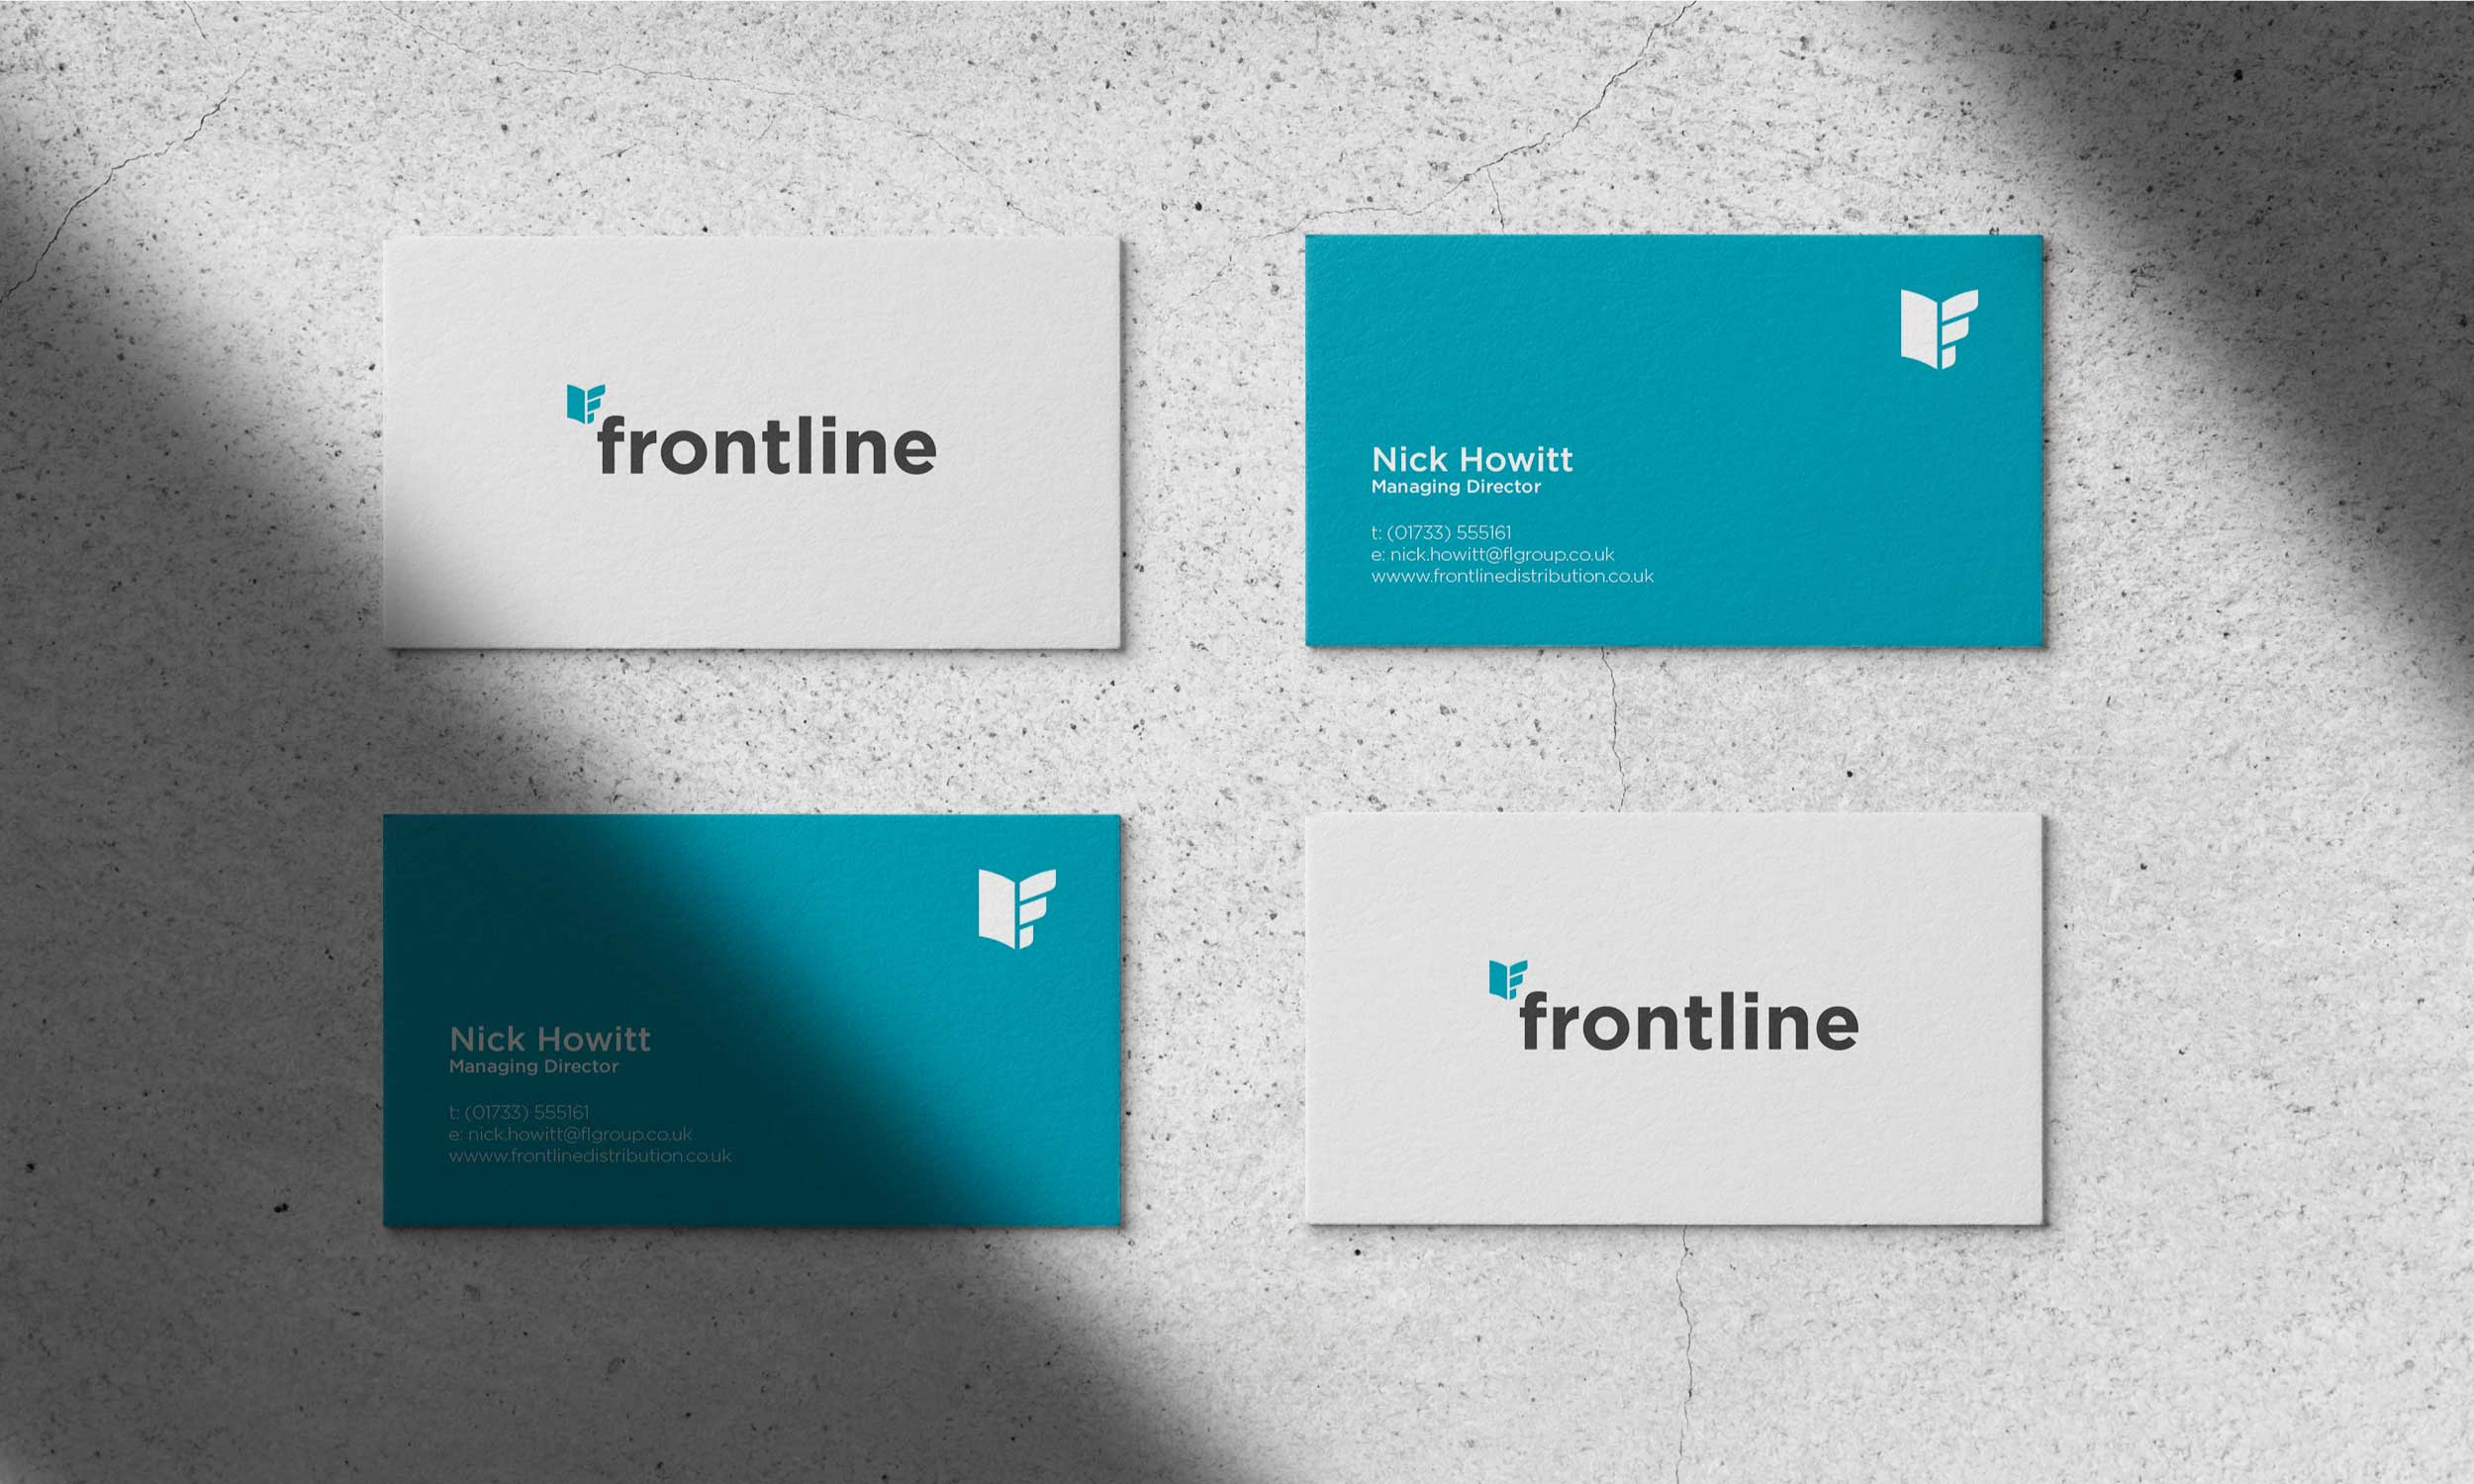 Frontline-Magazine-Distribution-Business-Cards.jpg